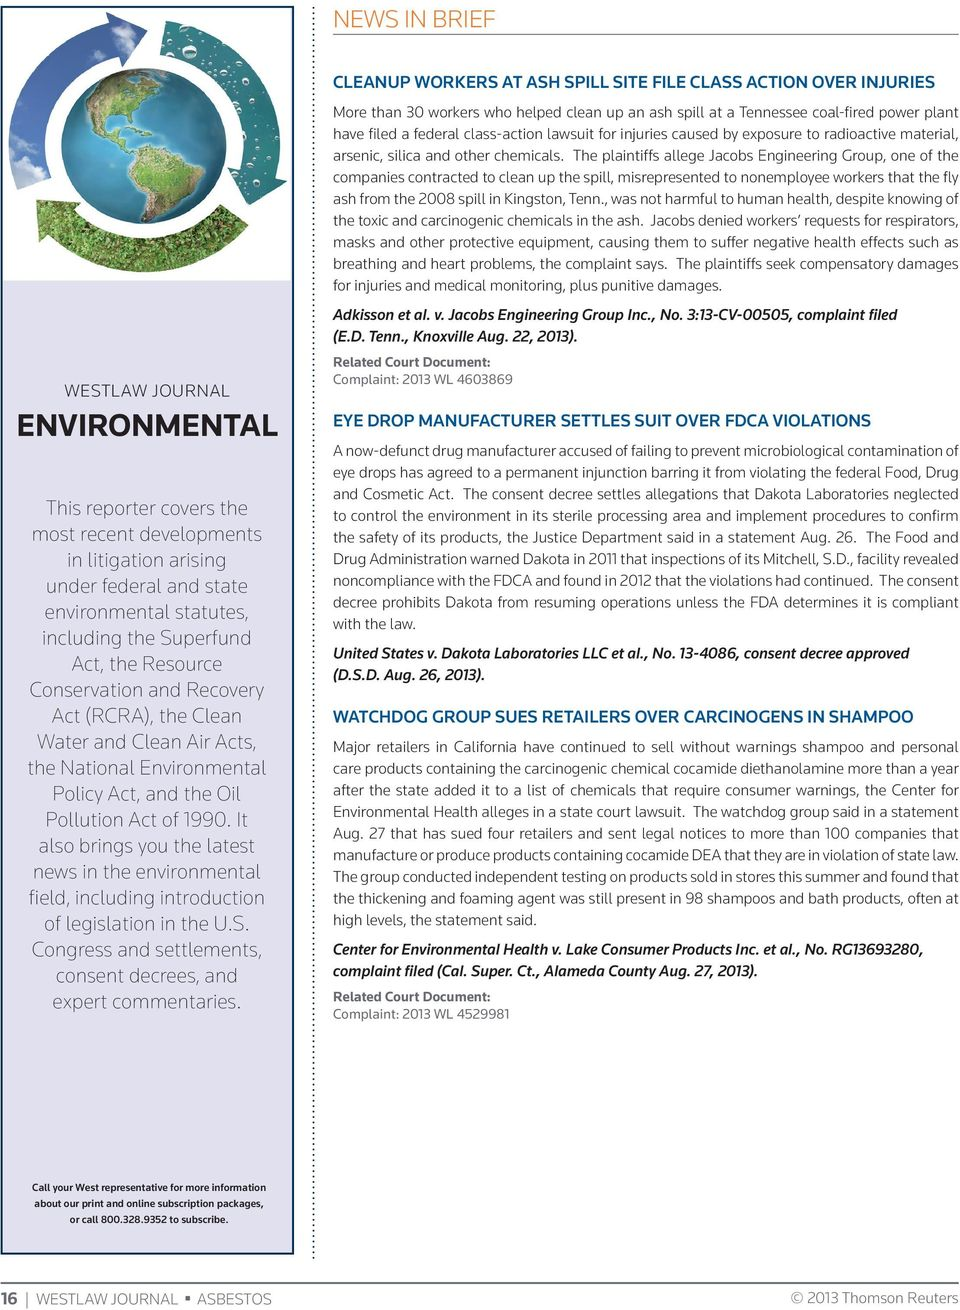 It also brings you the latest news in the environmental field, including introduction of legislation in the U.S. Congress and settlements, consent decrees, and expert commentaries.